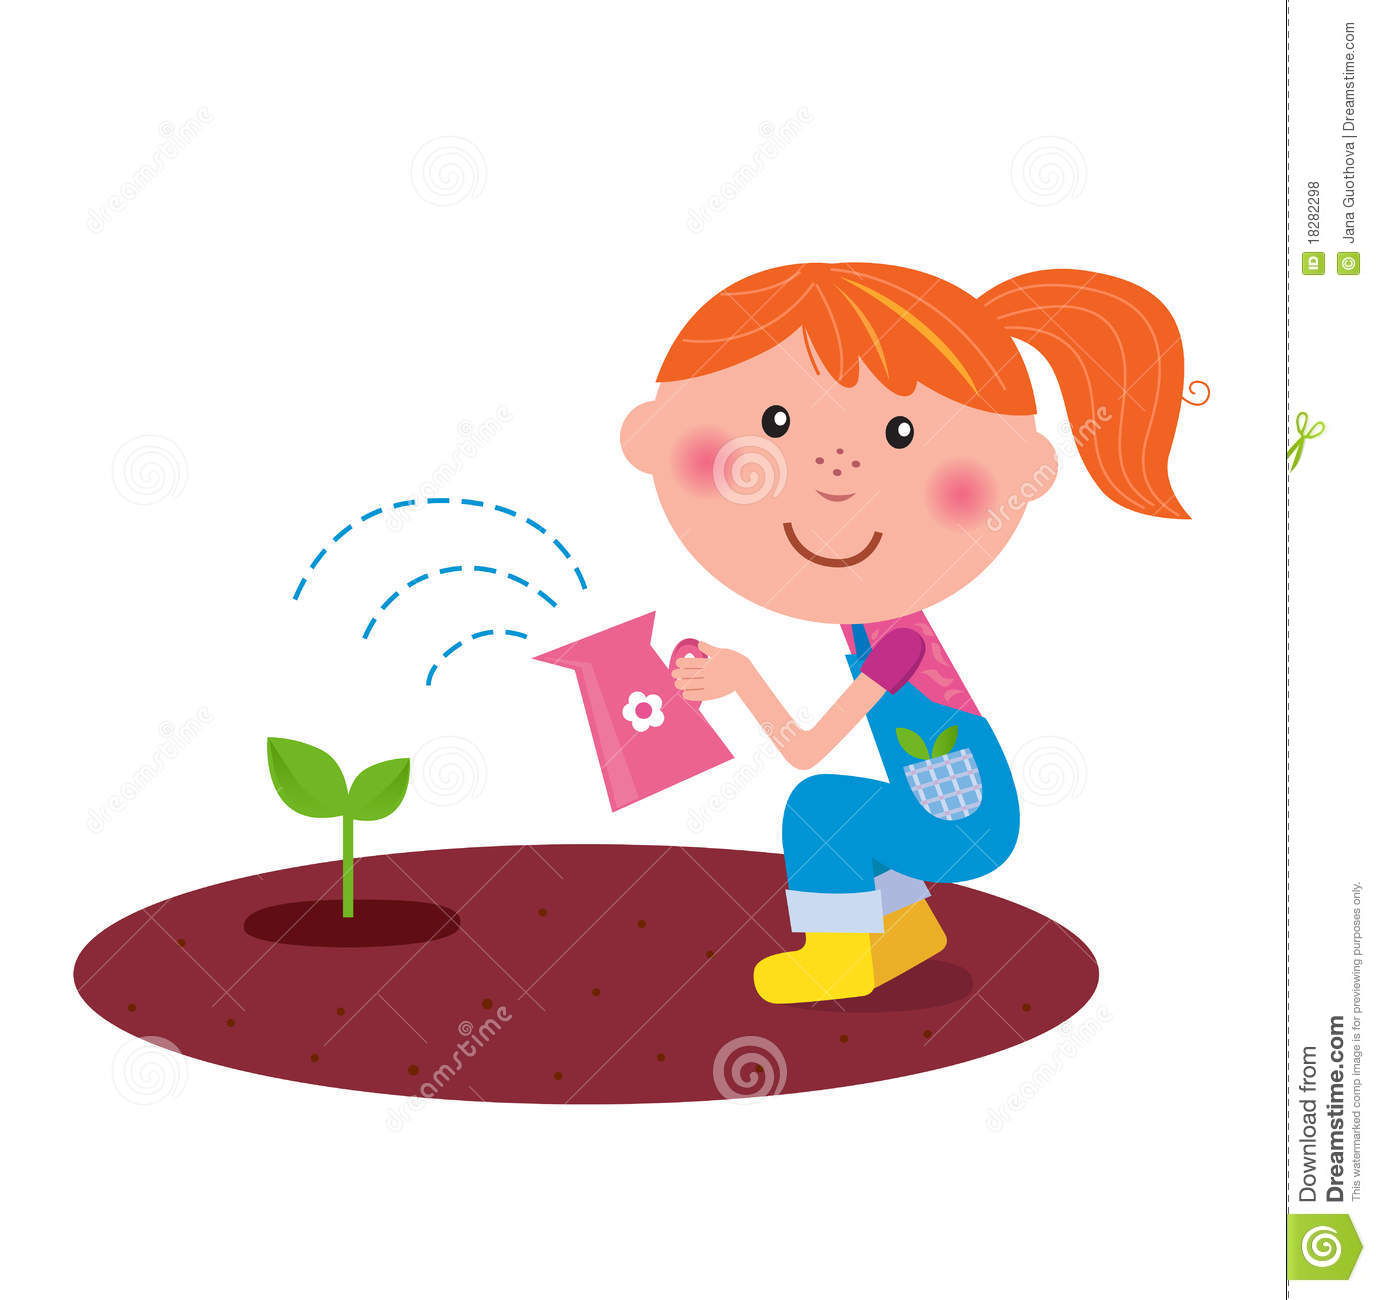 Water plants clipart 20 free Cliparts | Download images on ...